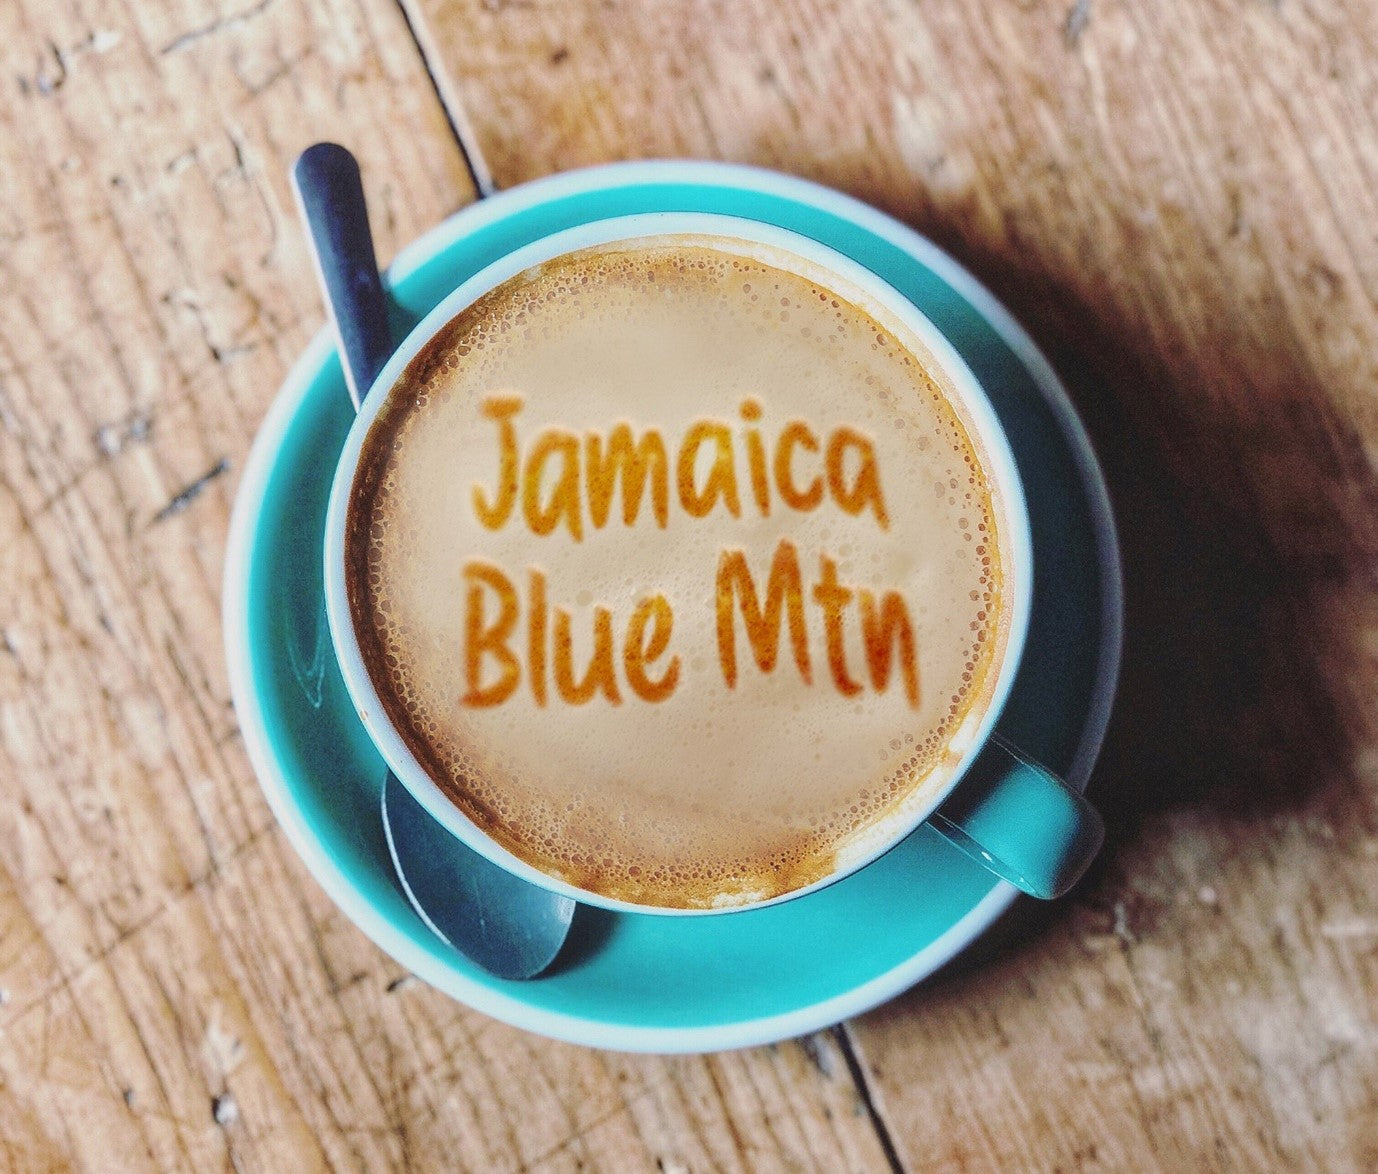 Jamaican Blue Mountain Coffee, Jamaican Coffee, Virtual gift cards